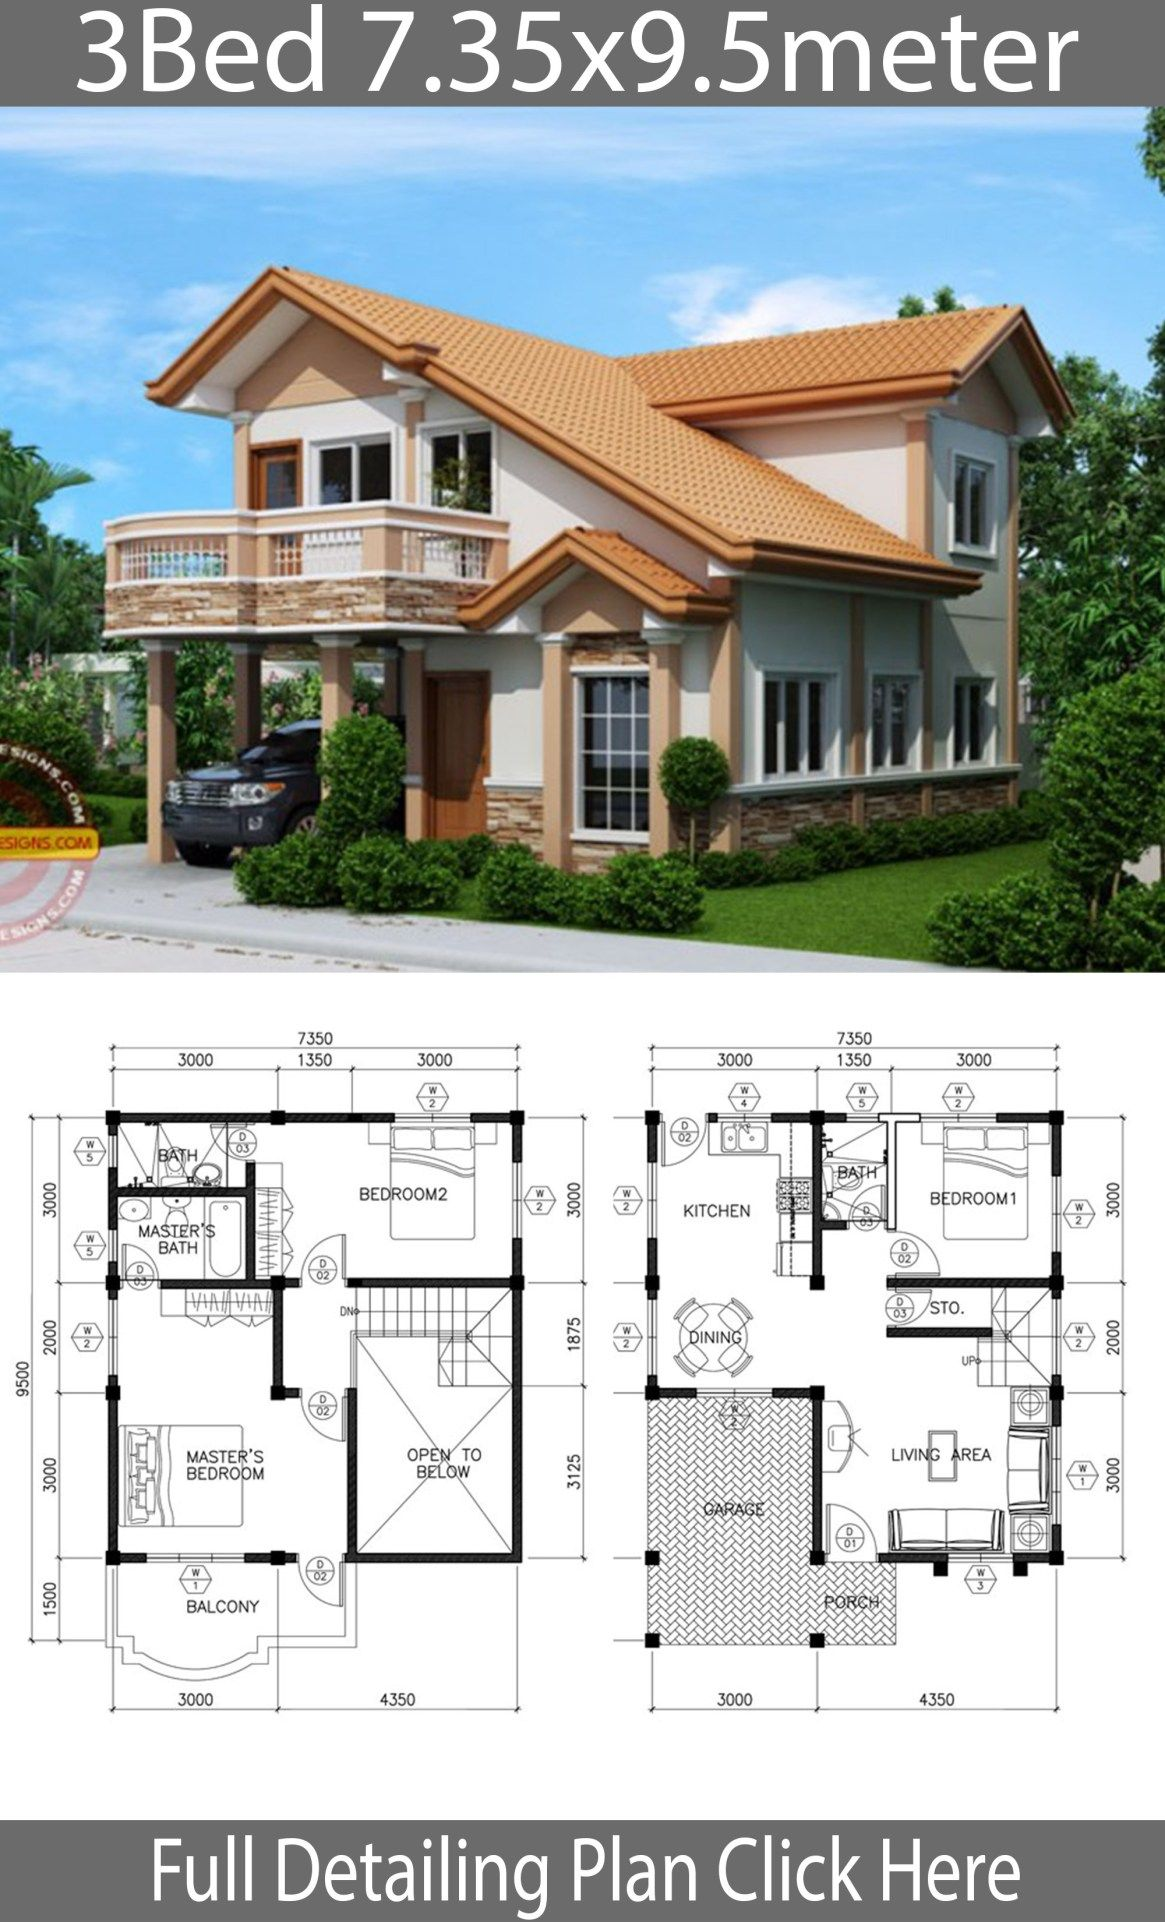 Home Design Plan 7 35x9 5m With 3 Bedrooms Home Design With Plansearch Model House Plan Architectural House Plans House Designs Exterior